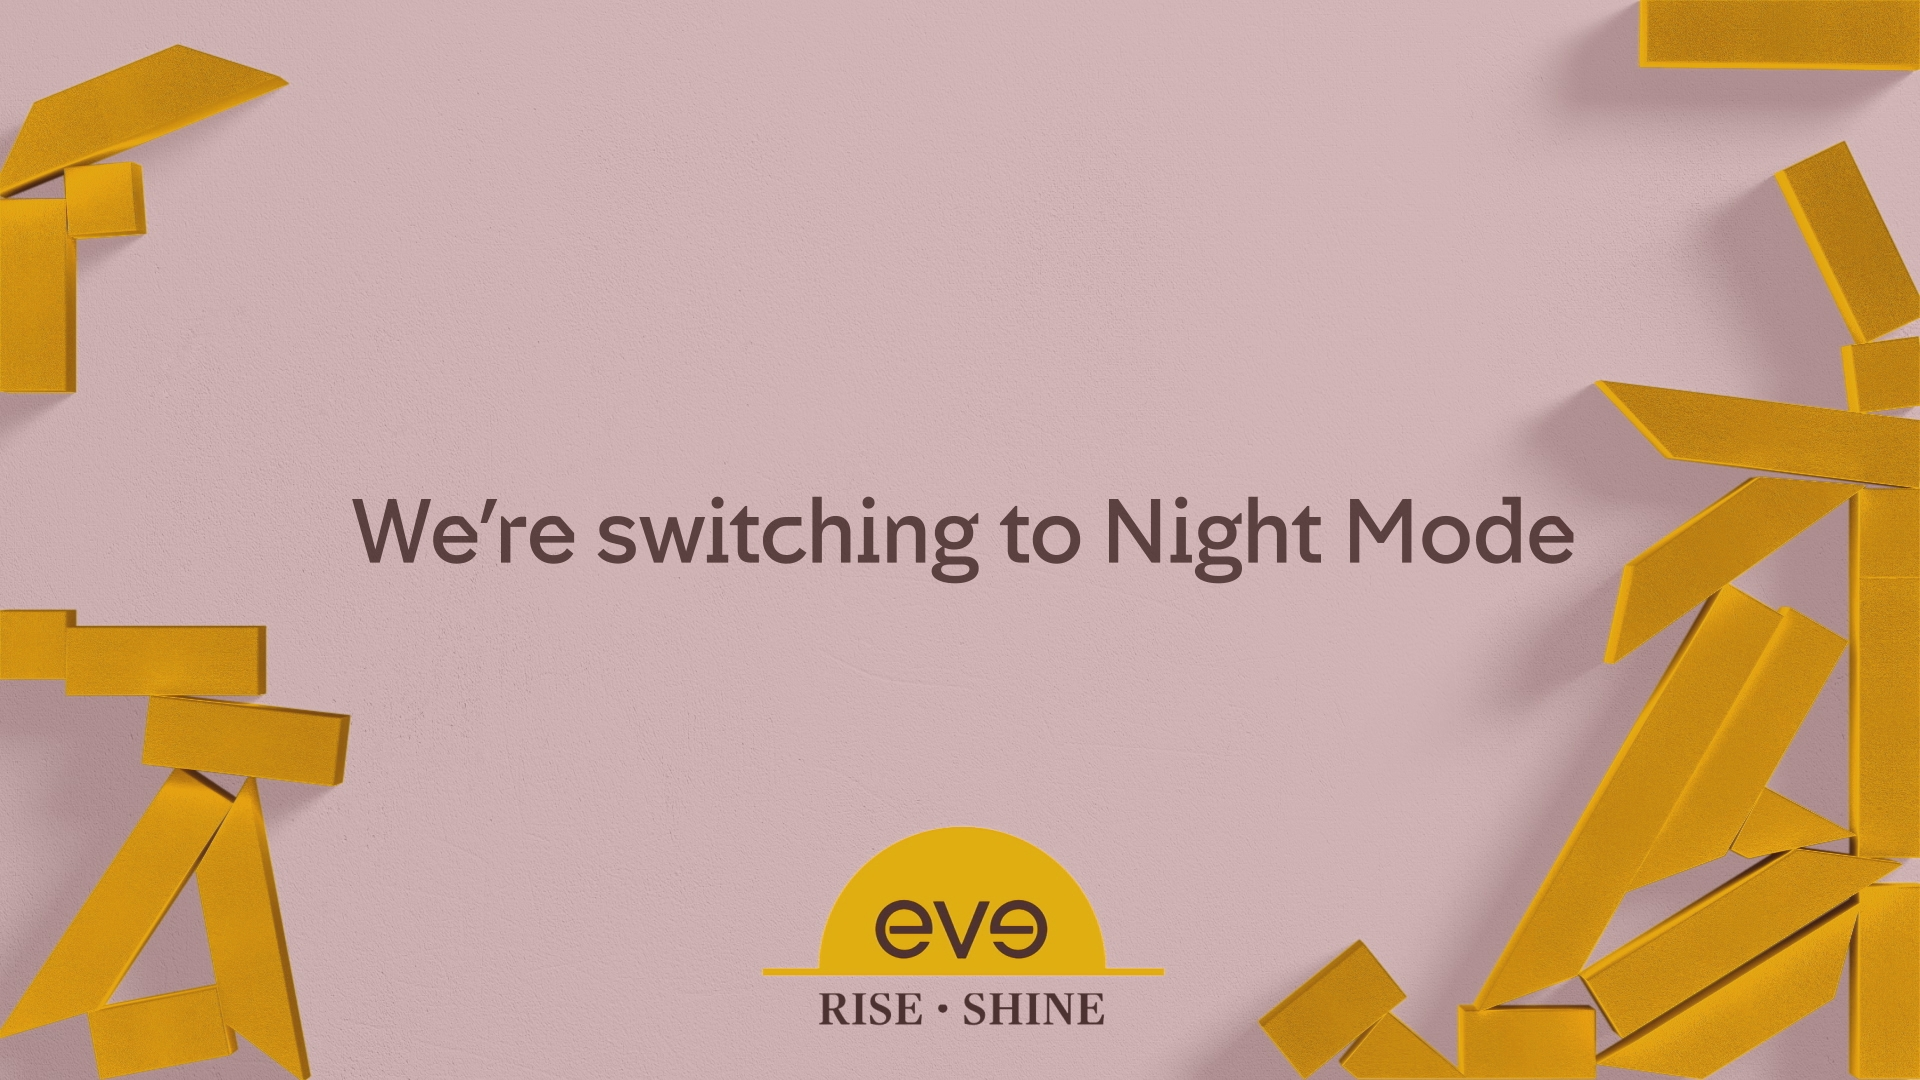 C4, eve sleep night mode ad break intro